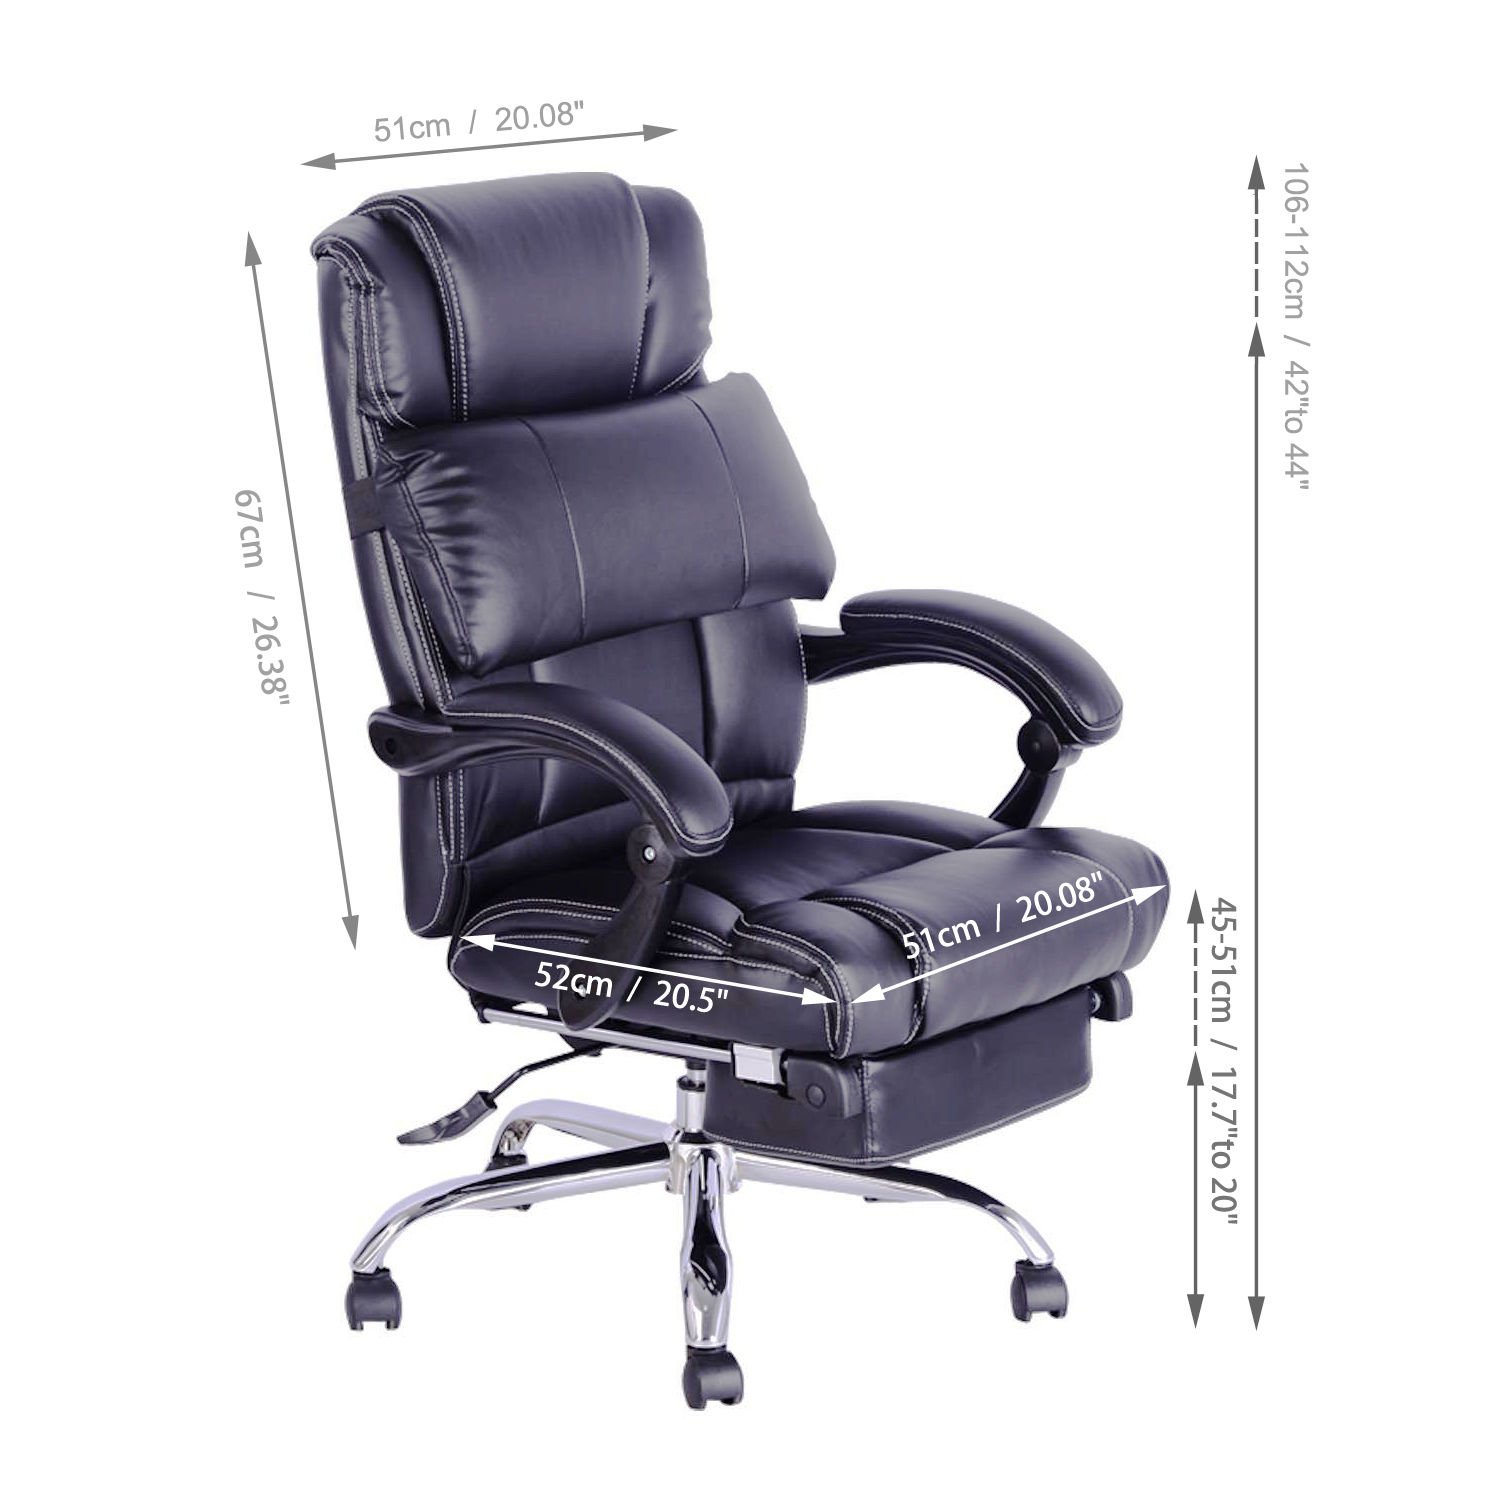 with desk furniture seat buy recliner recline table full zero racing cheap power fine office chairs best gravity chair leather espresso vinyl of electric reclining size massage ergonomic